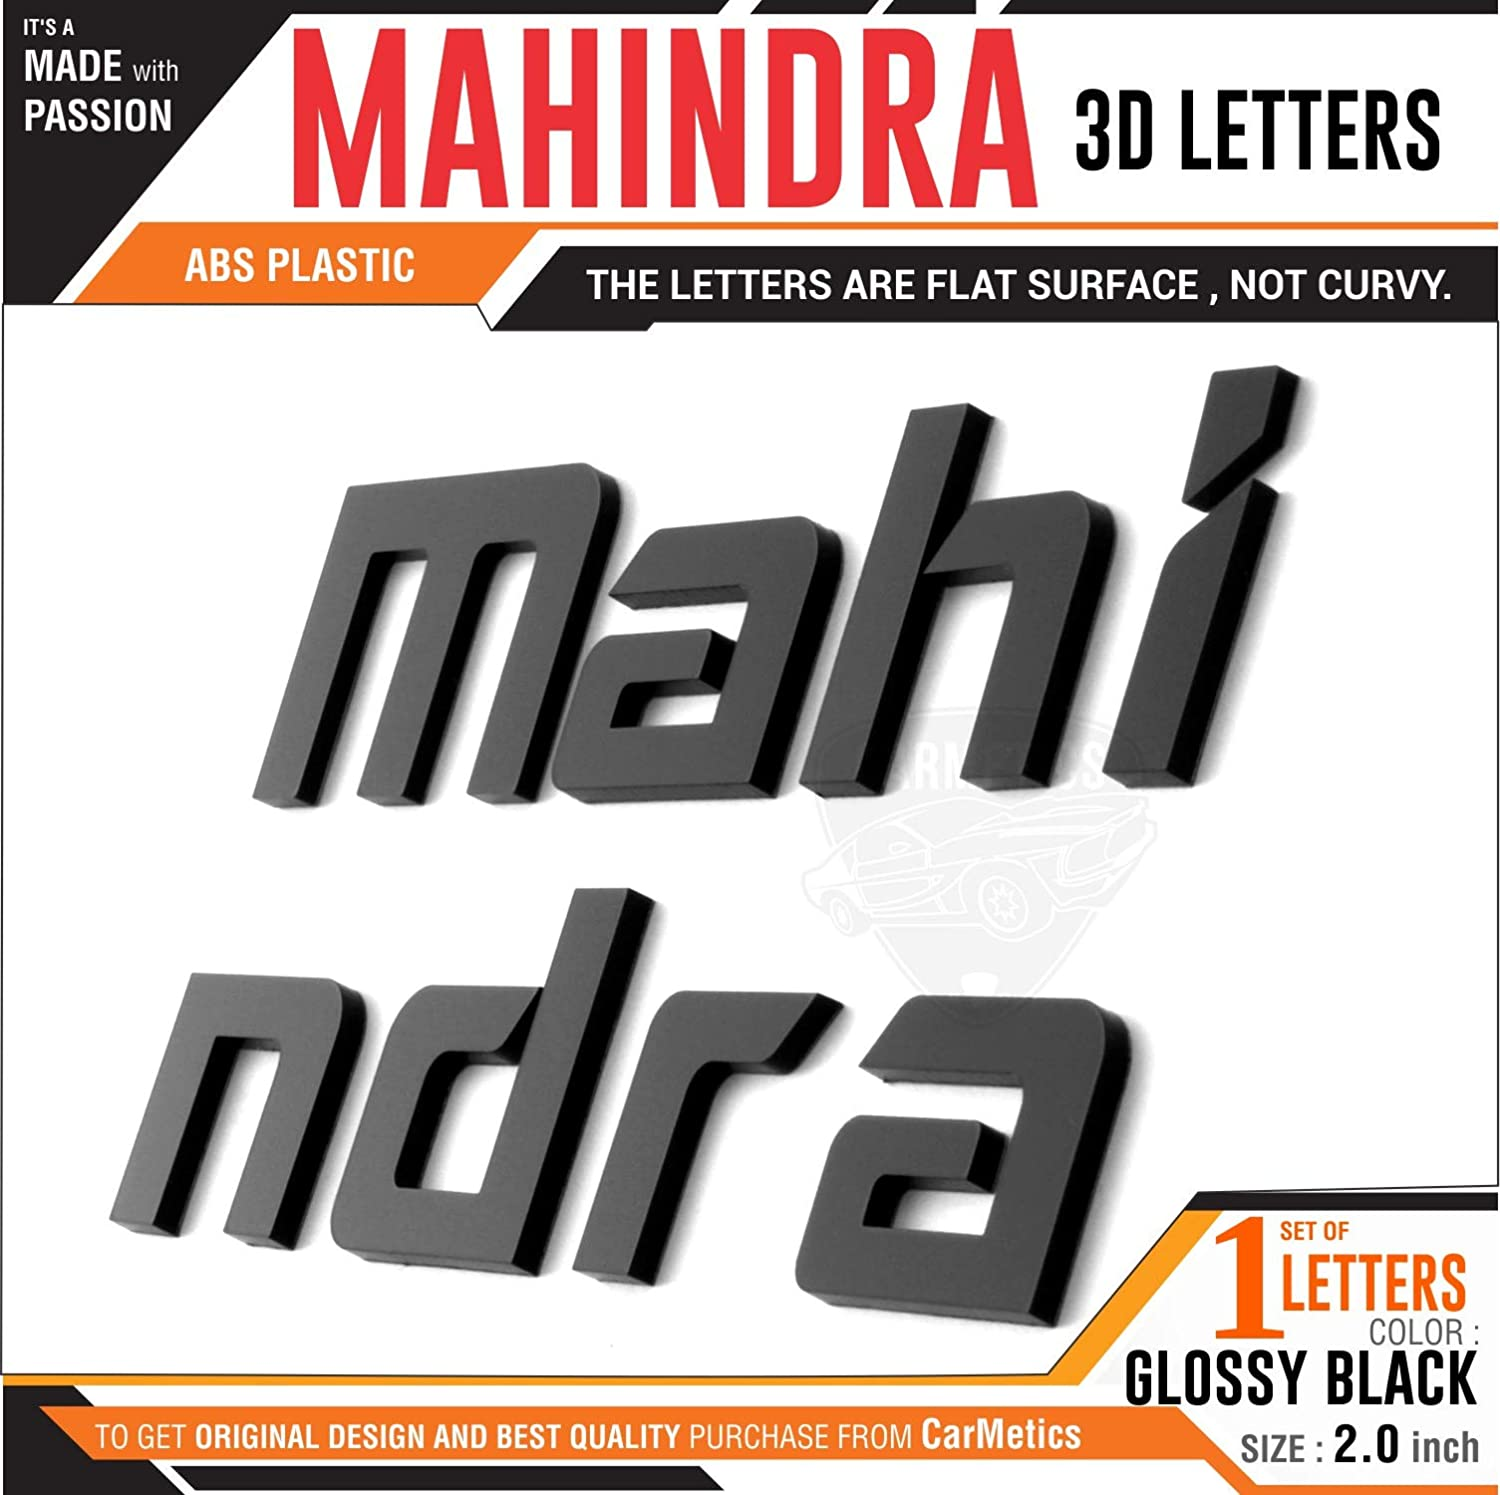 Carmetics mahindra 3d letters 3d stickers for mahindra verito emblem logo badge sticker decal car accessories glossy black amazon in car motorbike